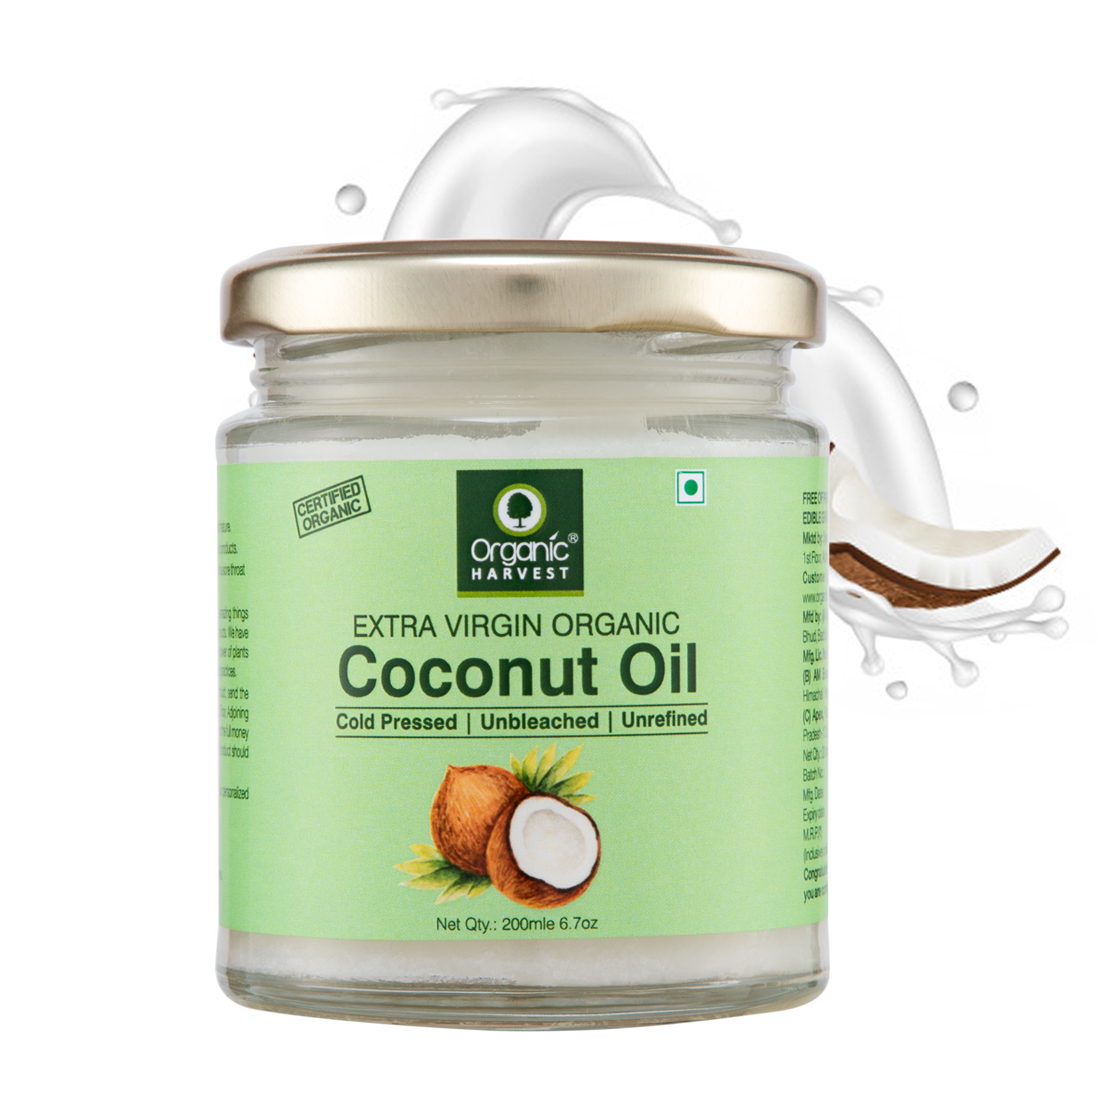 Organic Harvest | Organic Harvest Extra Virgin Coconut Oil Cold Pressed, Solution for Body Massage, Skin Care, Hair Growth, and Oil Pulling, 200ml